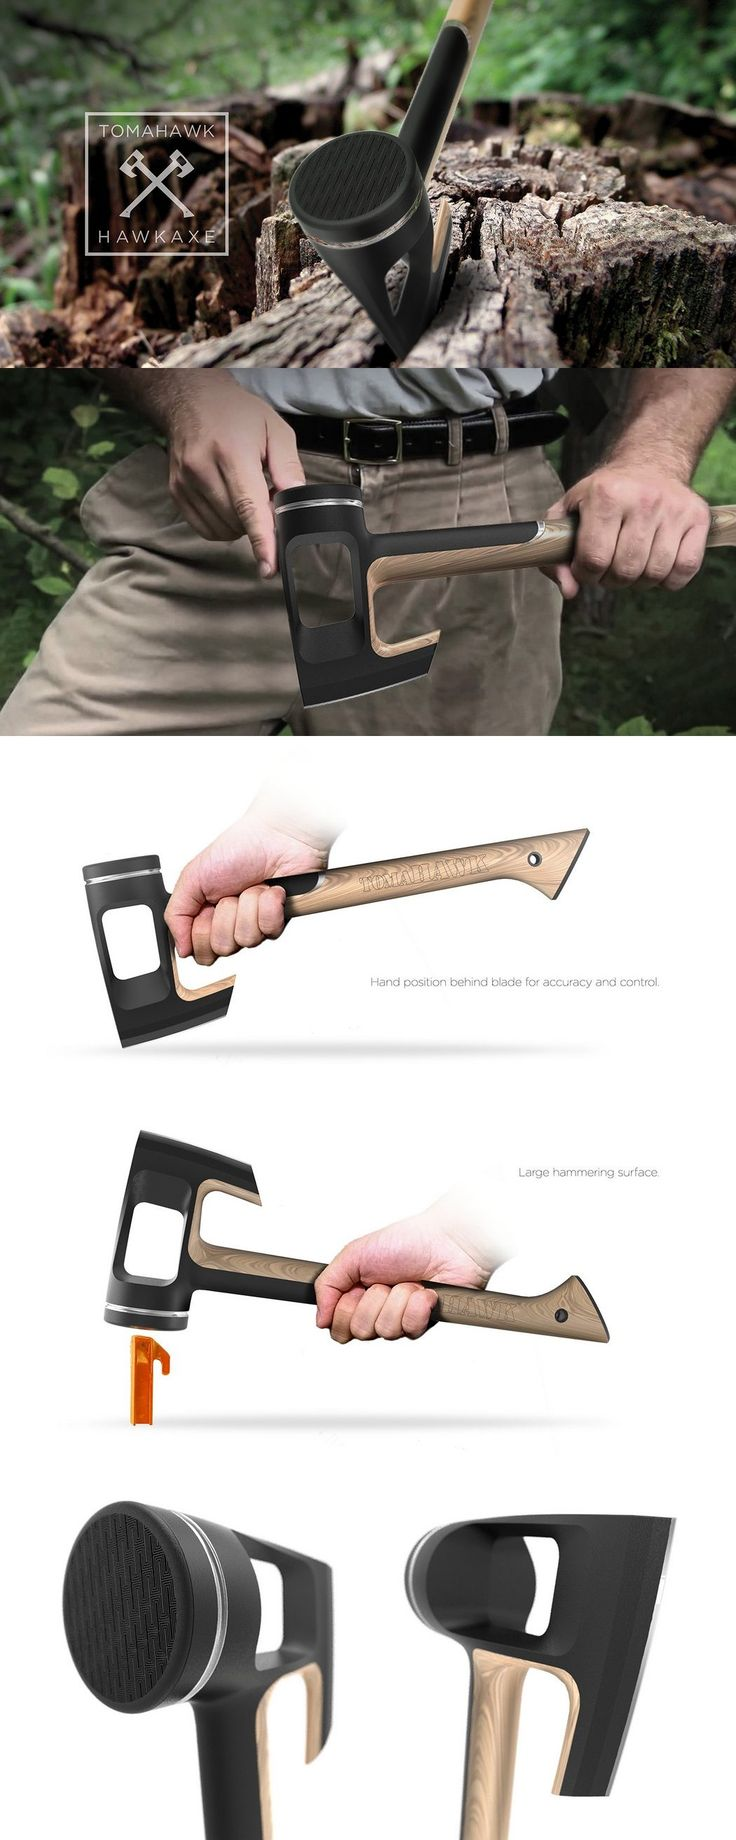 The Tomahawk Hawkaxe is designed to not just be efficient, but also promote the correct style of using the axe. Read More: http://www.yankodesign.com/2016/07/25/you-dont-need-to-be-an-axe-pert/